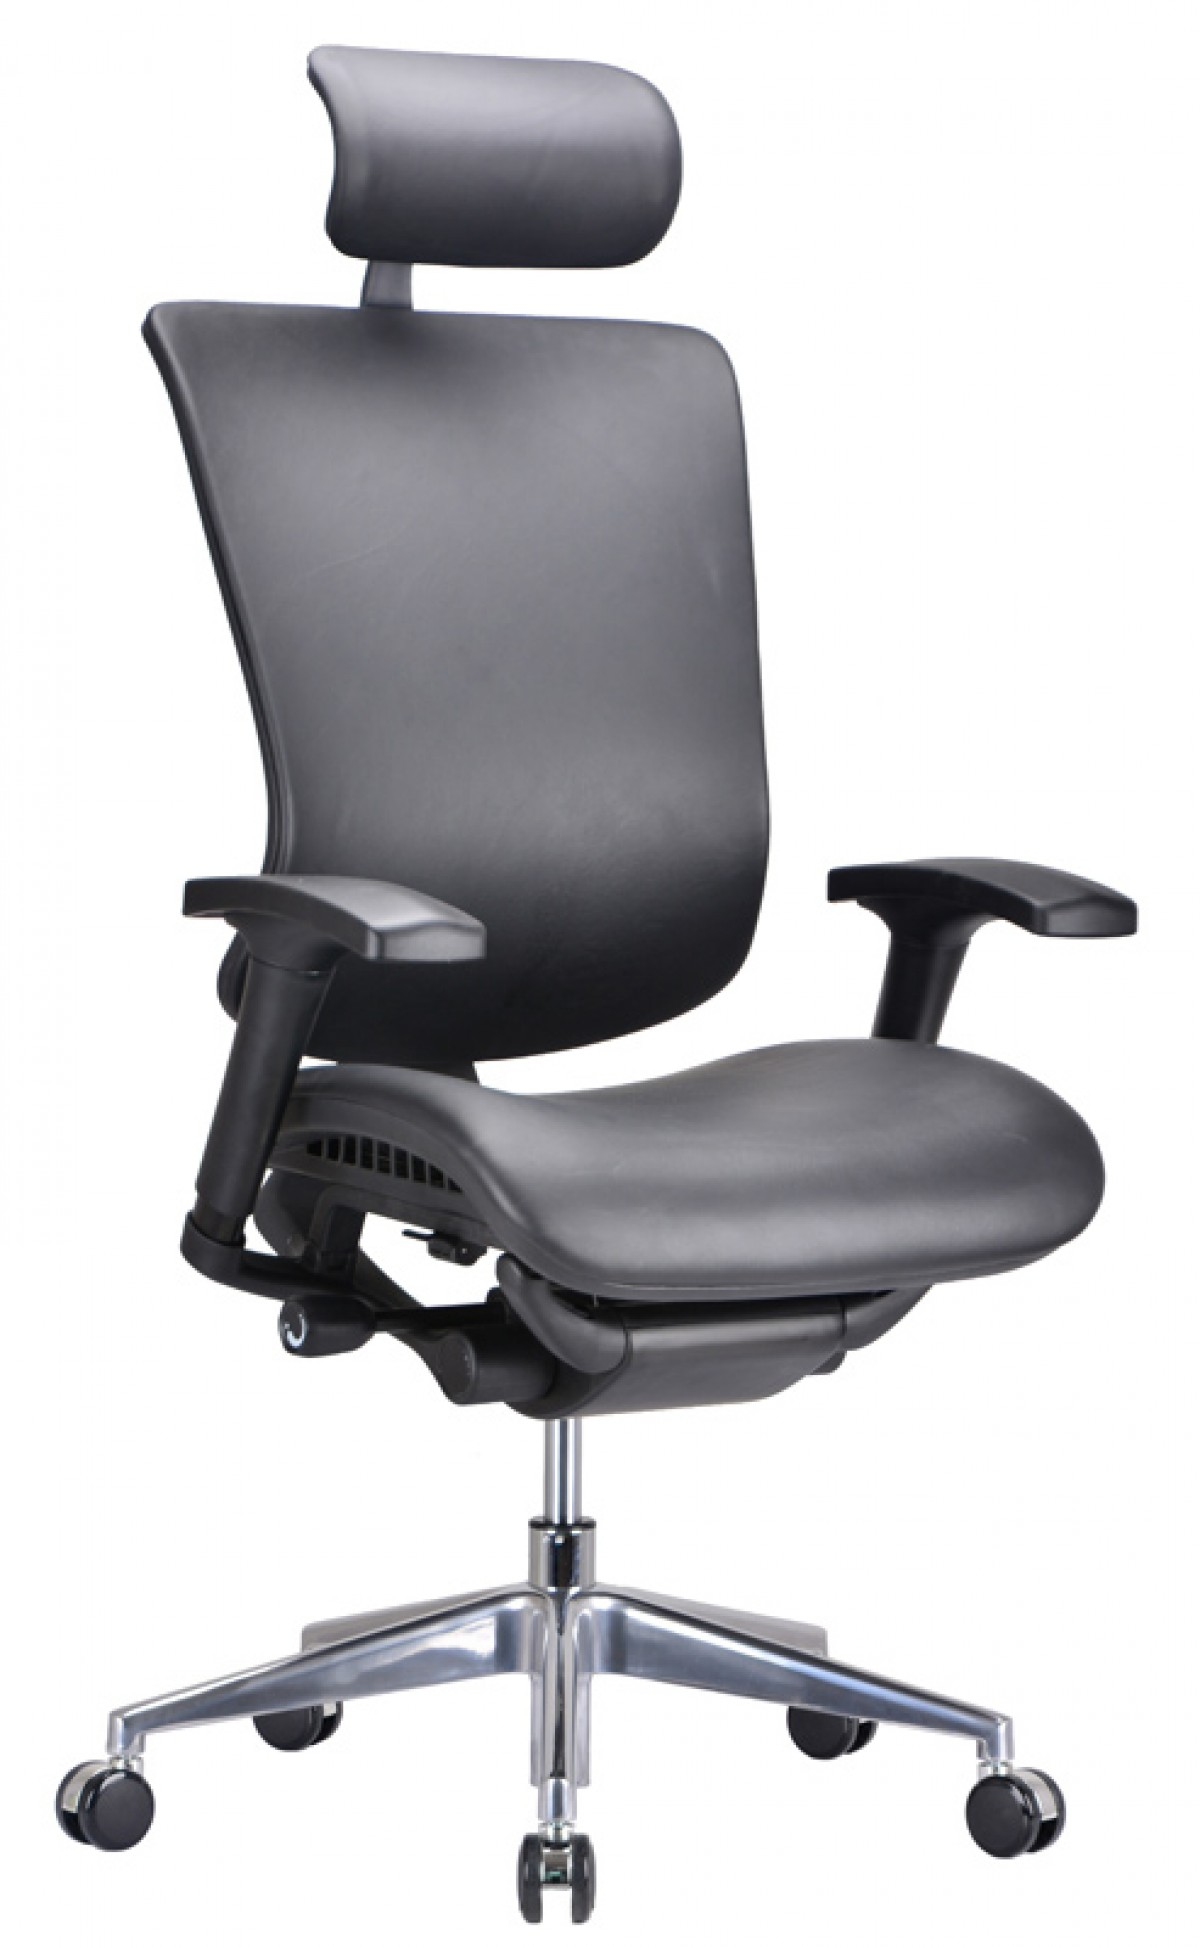 modern black leather desk chair lawn covers home depot modrest watson office